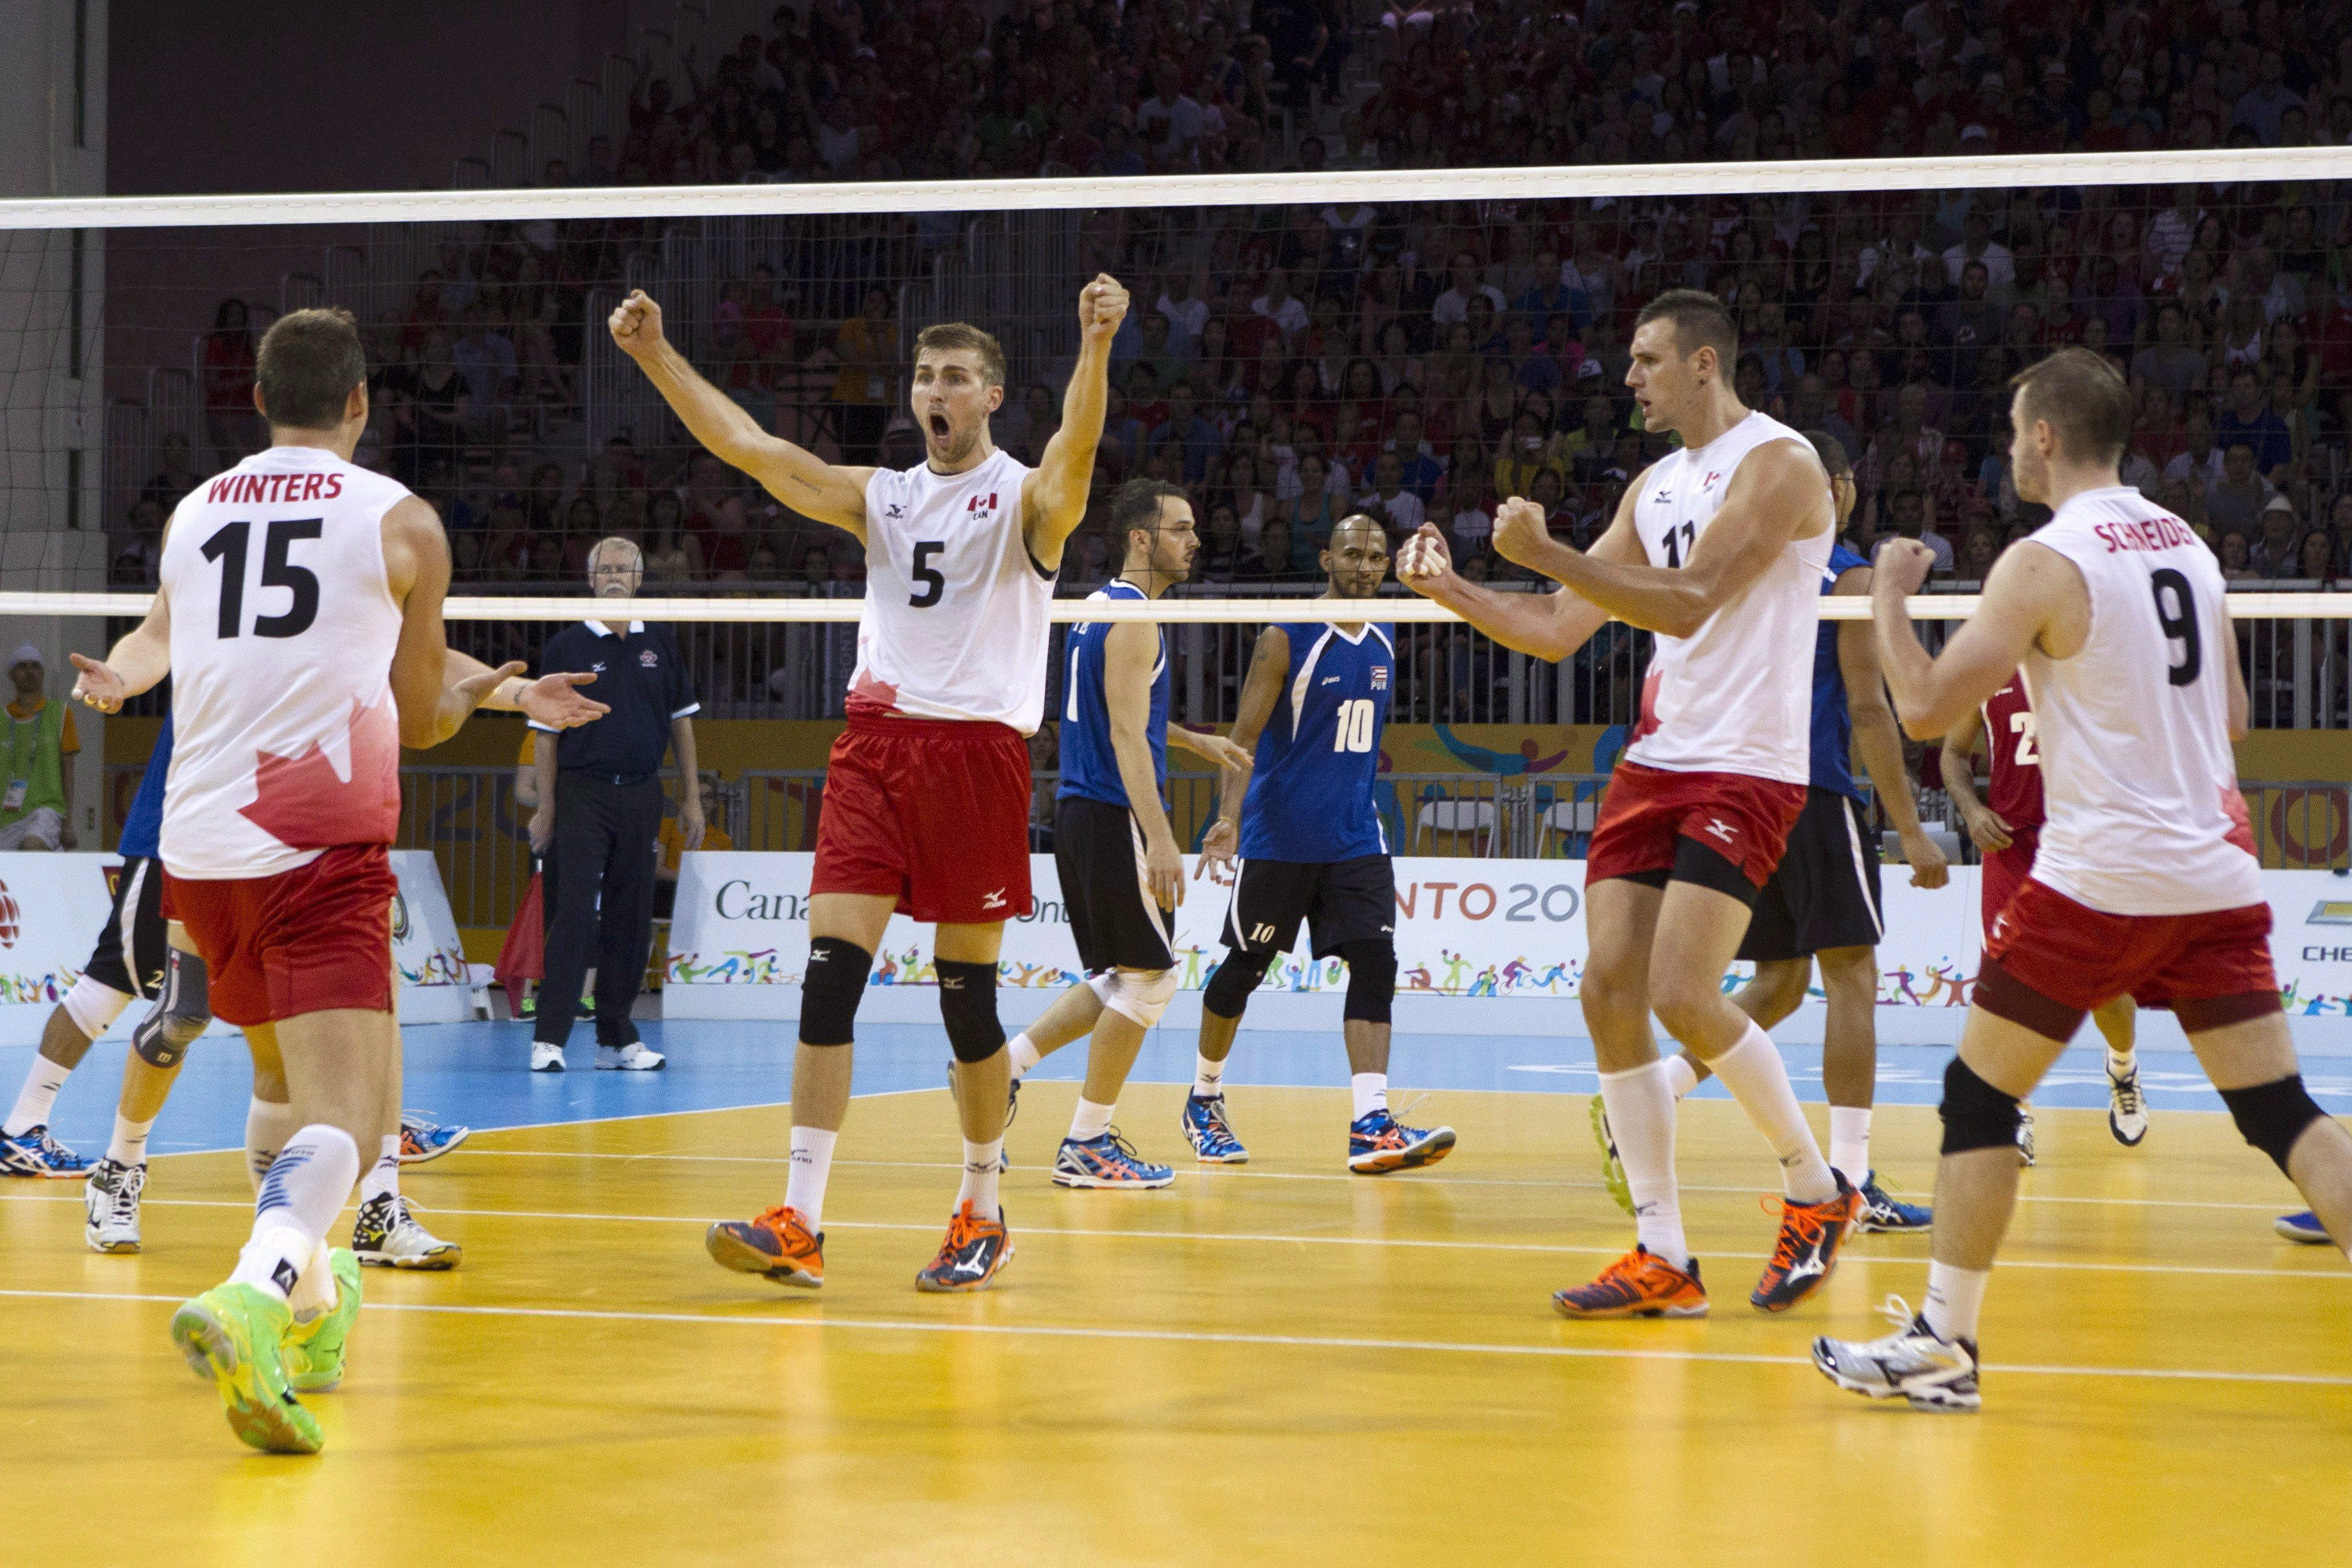 Members of the Canadian men's volleyball team celebrate a point during their 3-1 win over Puerto Rico in the men's volleyball bronze medal game at the Pan Am Toronto 2015 games in Toronto on Sunday, July 26, 2015. THE CANADIAN PRESS/Chris Young